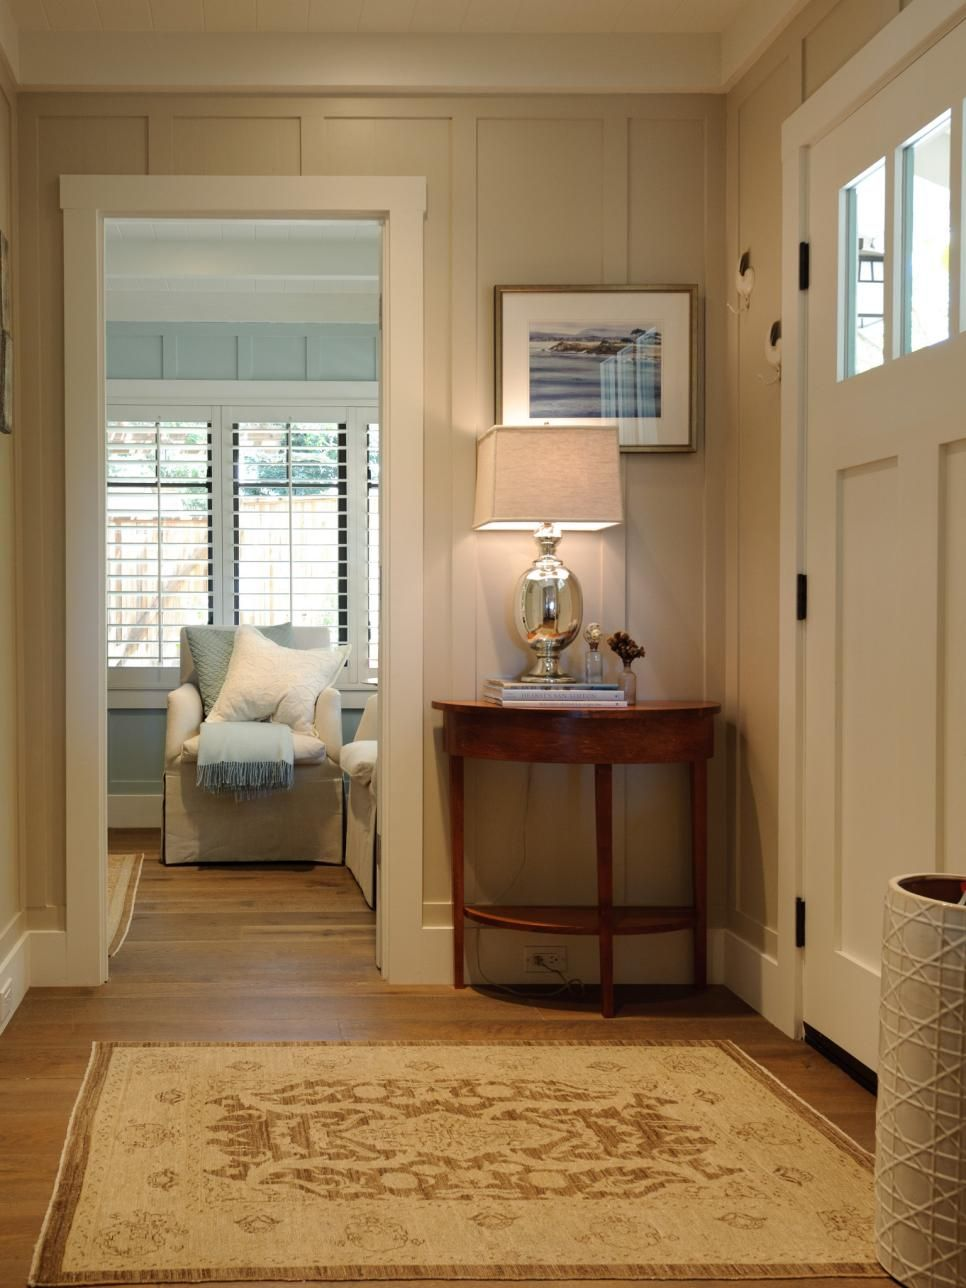 Soft taupe paneled walls and a neutral, traditional rug create a stylish entry in this casual, coastal home. The side table by the door provides an easy landing spot for keys, while the lamp on top means you never have to return home to a dark house. Board-and-batten-style walls add visual interest and texture to the space.